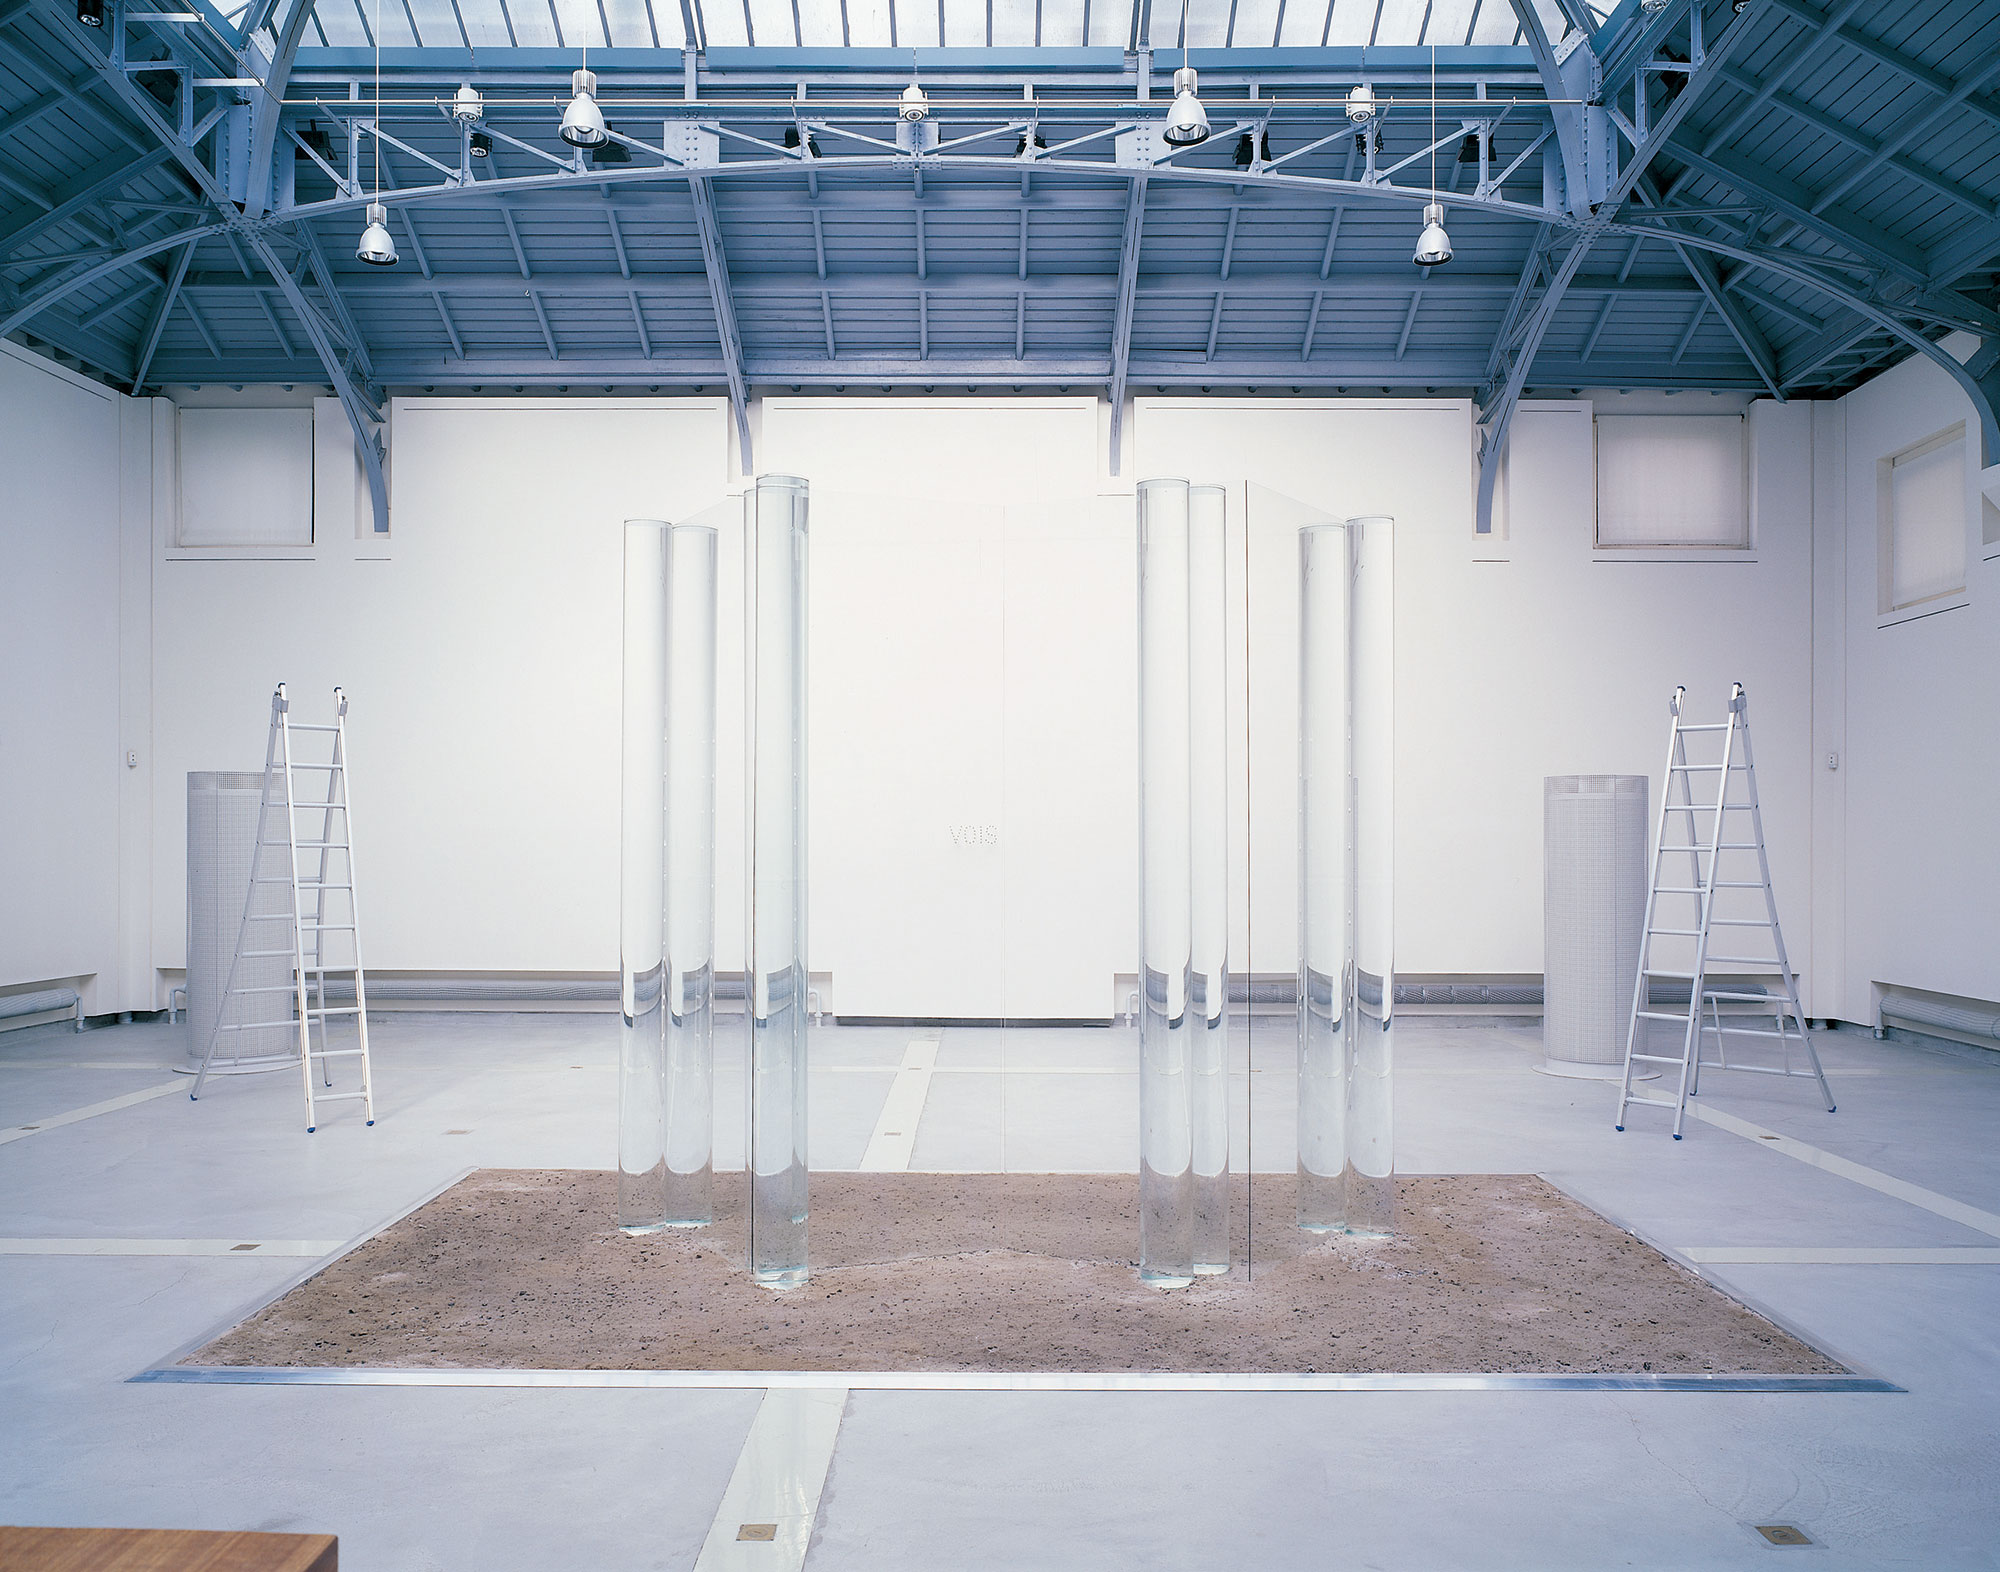 BOIS/VOIS/SOIS|2002 Glass, water, ash |700 x 300 cm|Installation view at La VerriËre HermËs, Brussels Photo: Fabien de Cugnac Courtesy of the artist